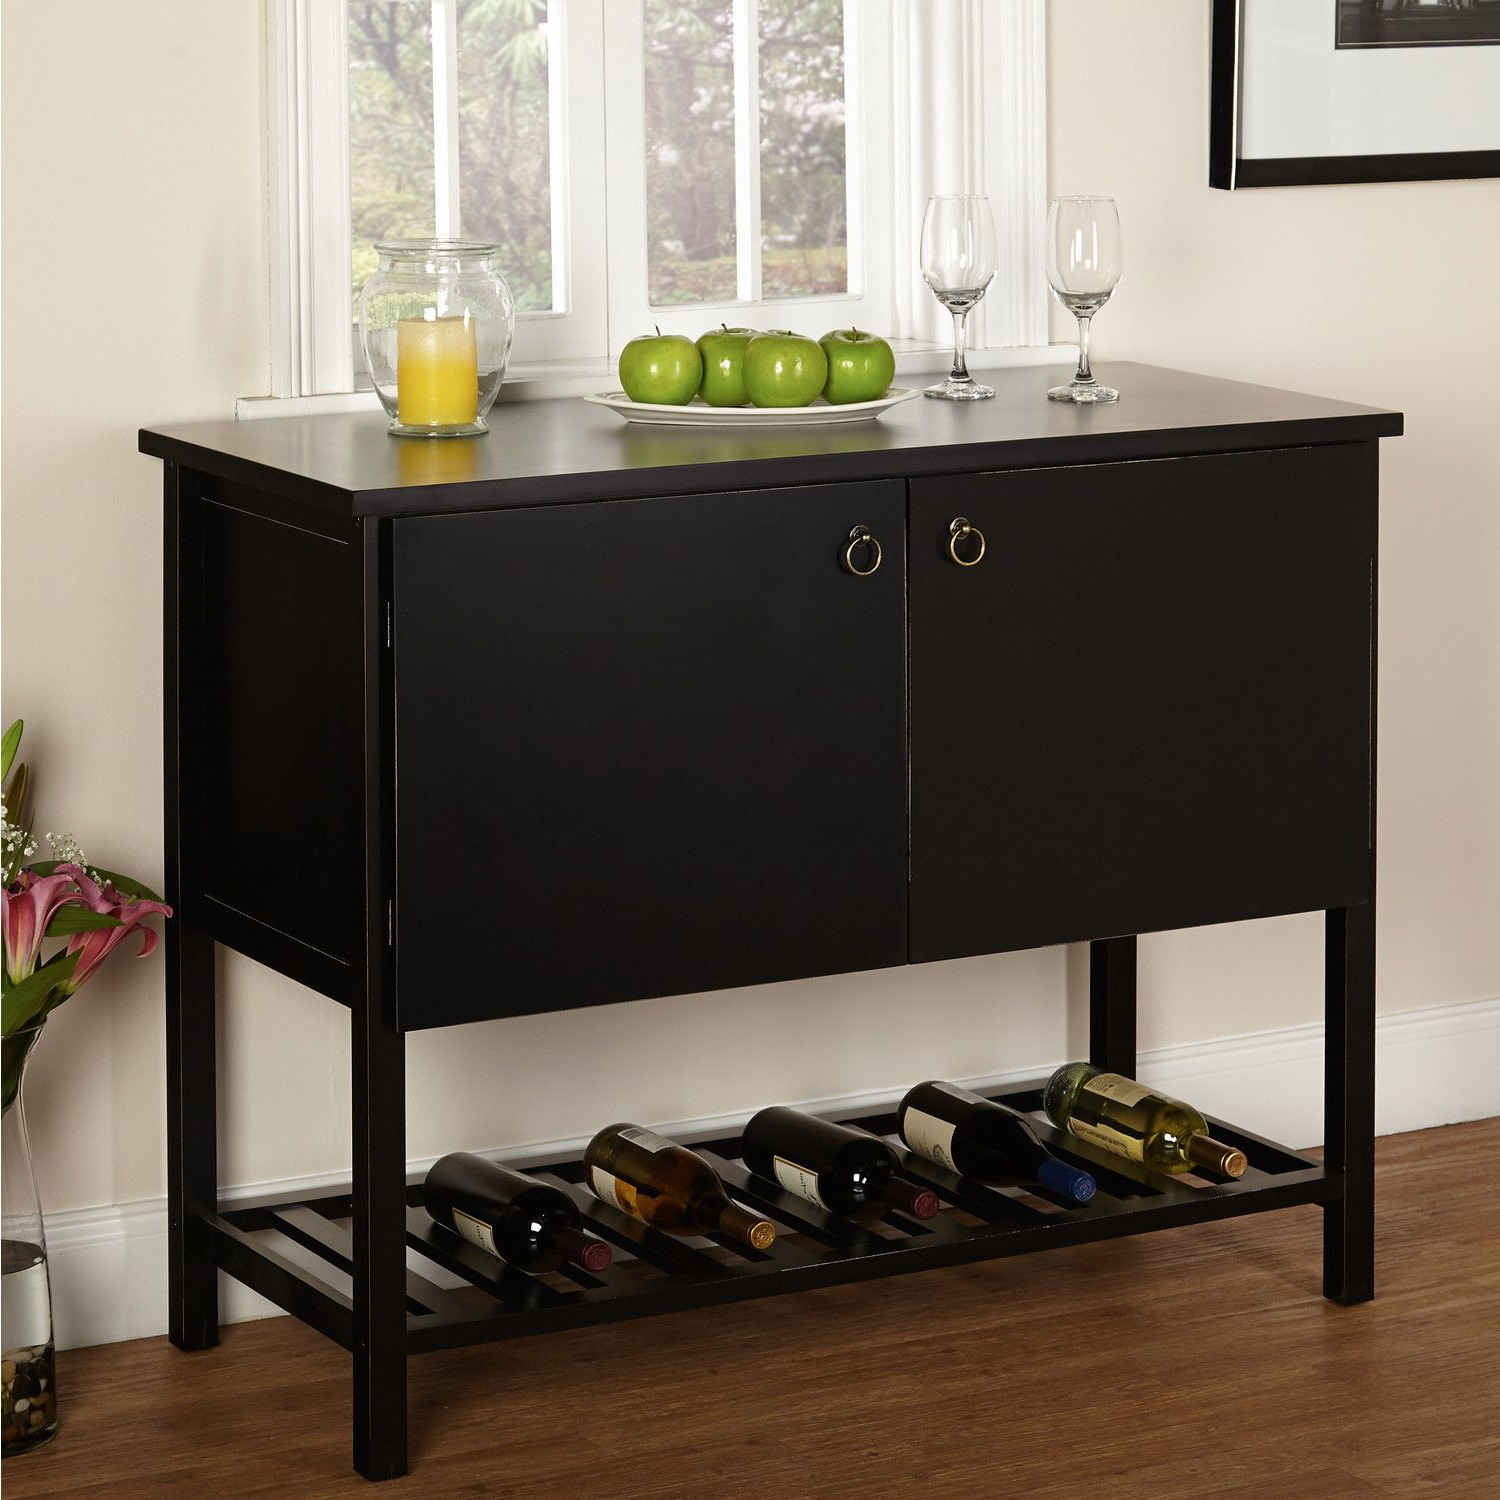 Tms Harvey Buffet | Ljc | Buffet, Wine Shelves, Sideboard Buffet With Regard To Simple Living Montego Two Door Buffets (View 8 of 20)